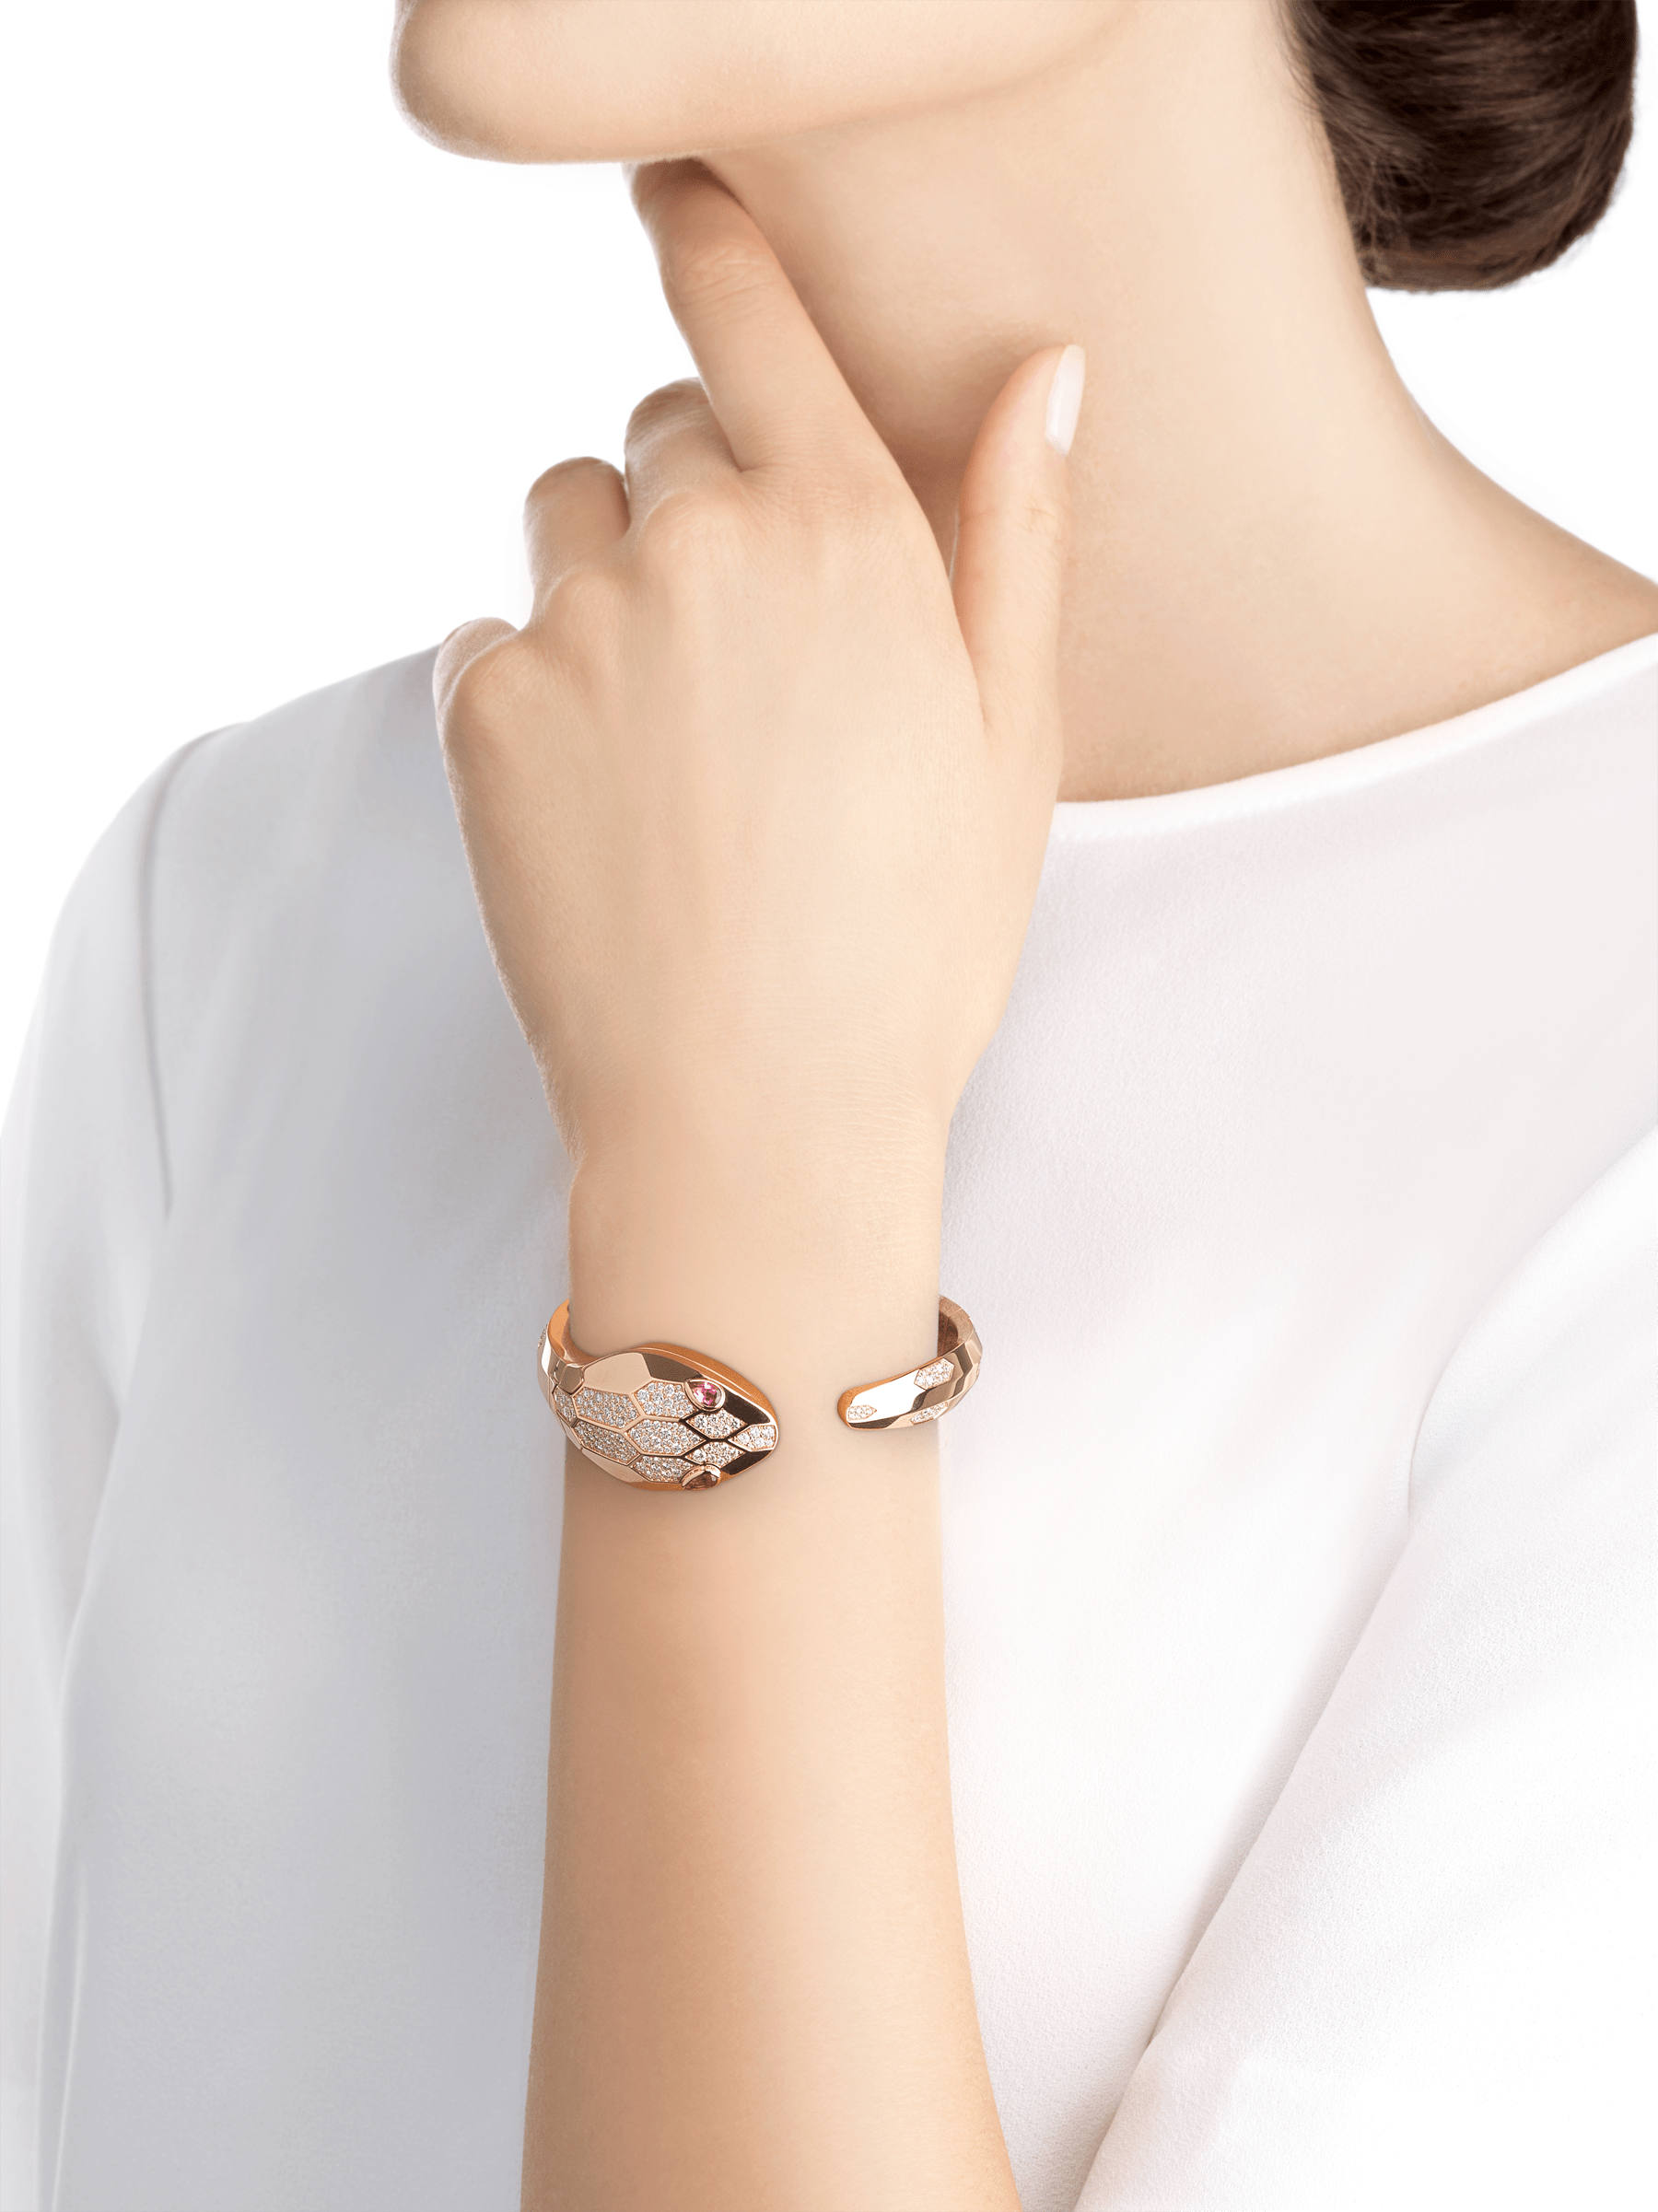 Serpenti Misteriosi Secret Watch in 18 kt rose gold case and bangle bracelet both set with round brilliant-cut diamonds, 18 kt rose gold diamond pavé dial and pear-shaped rubellite eyes. SrpntMister-SecretWtc-rose-gold2 image 7